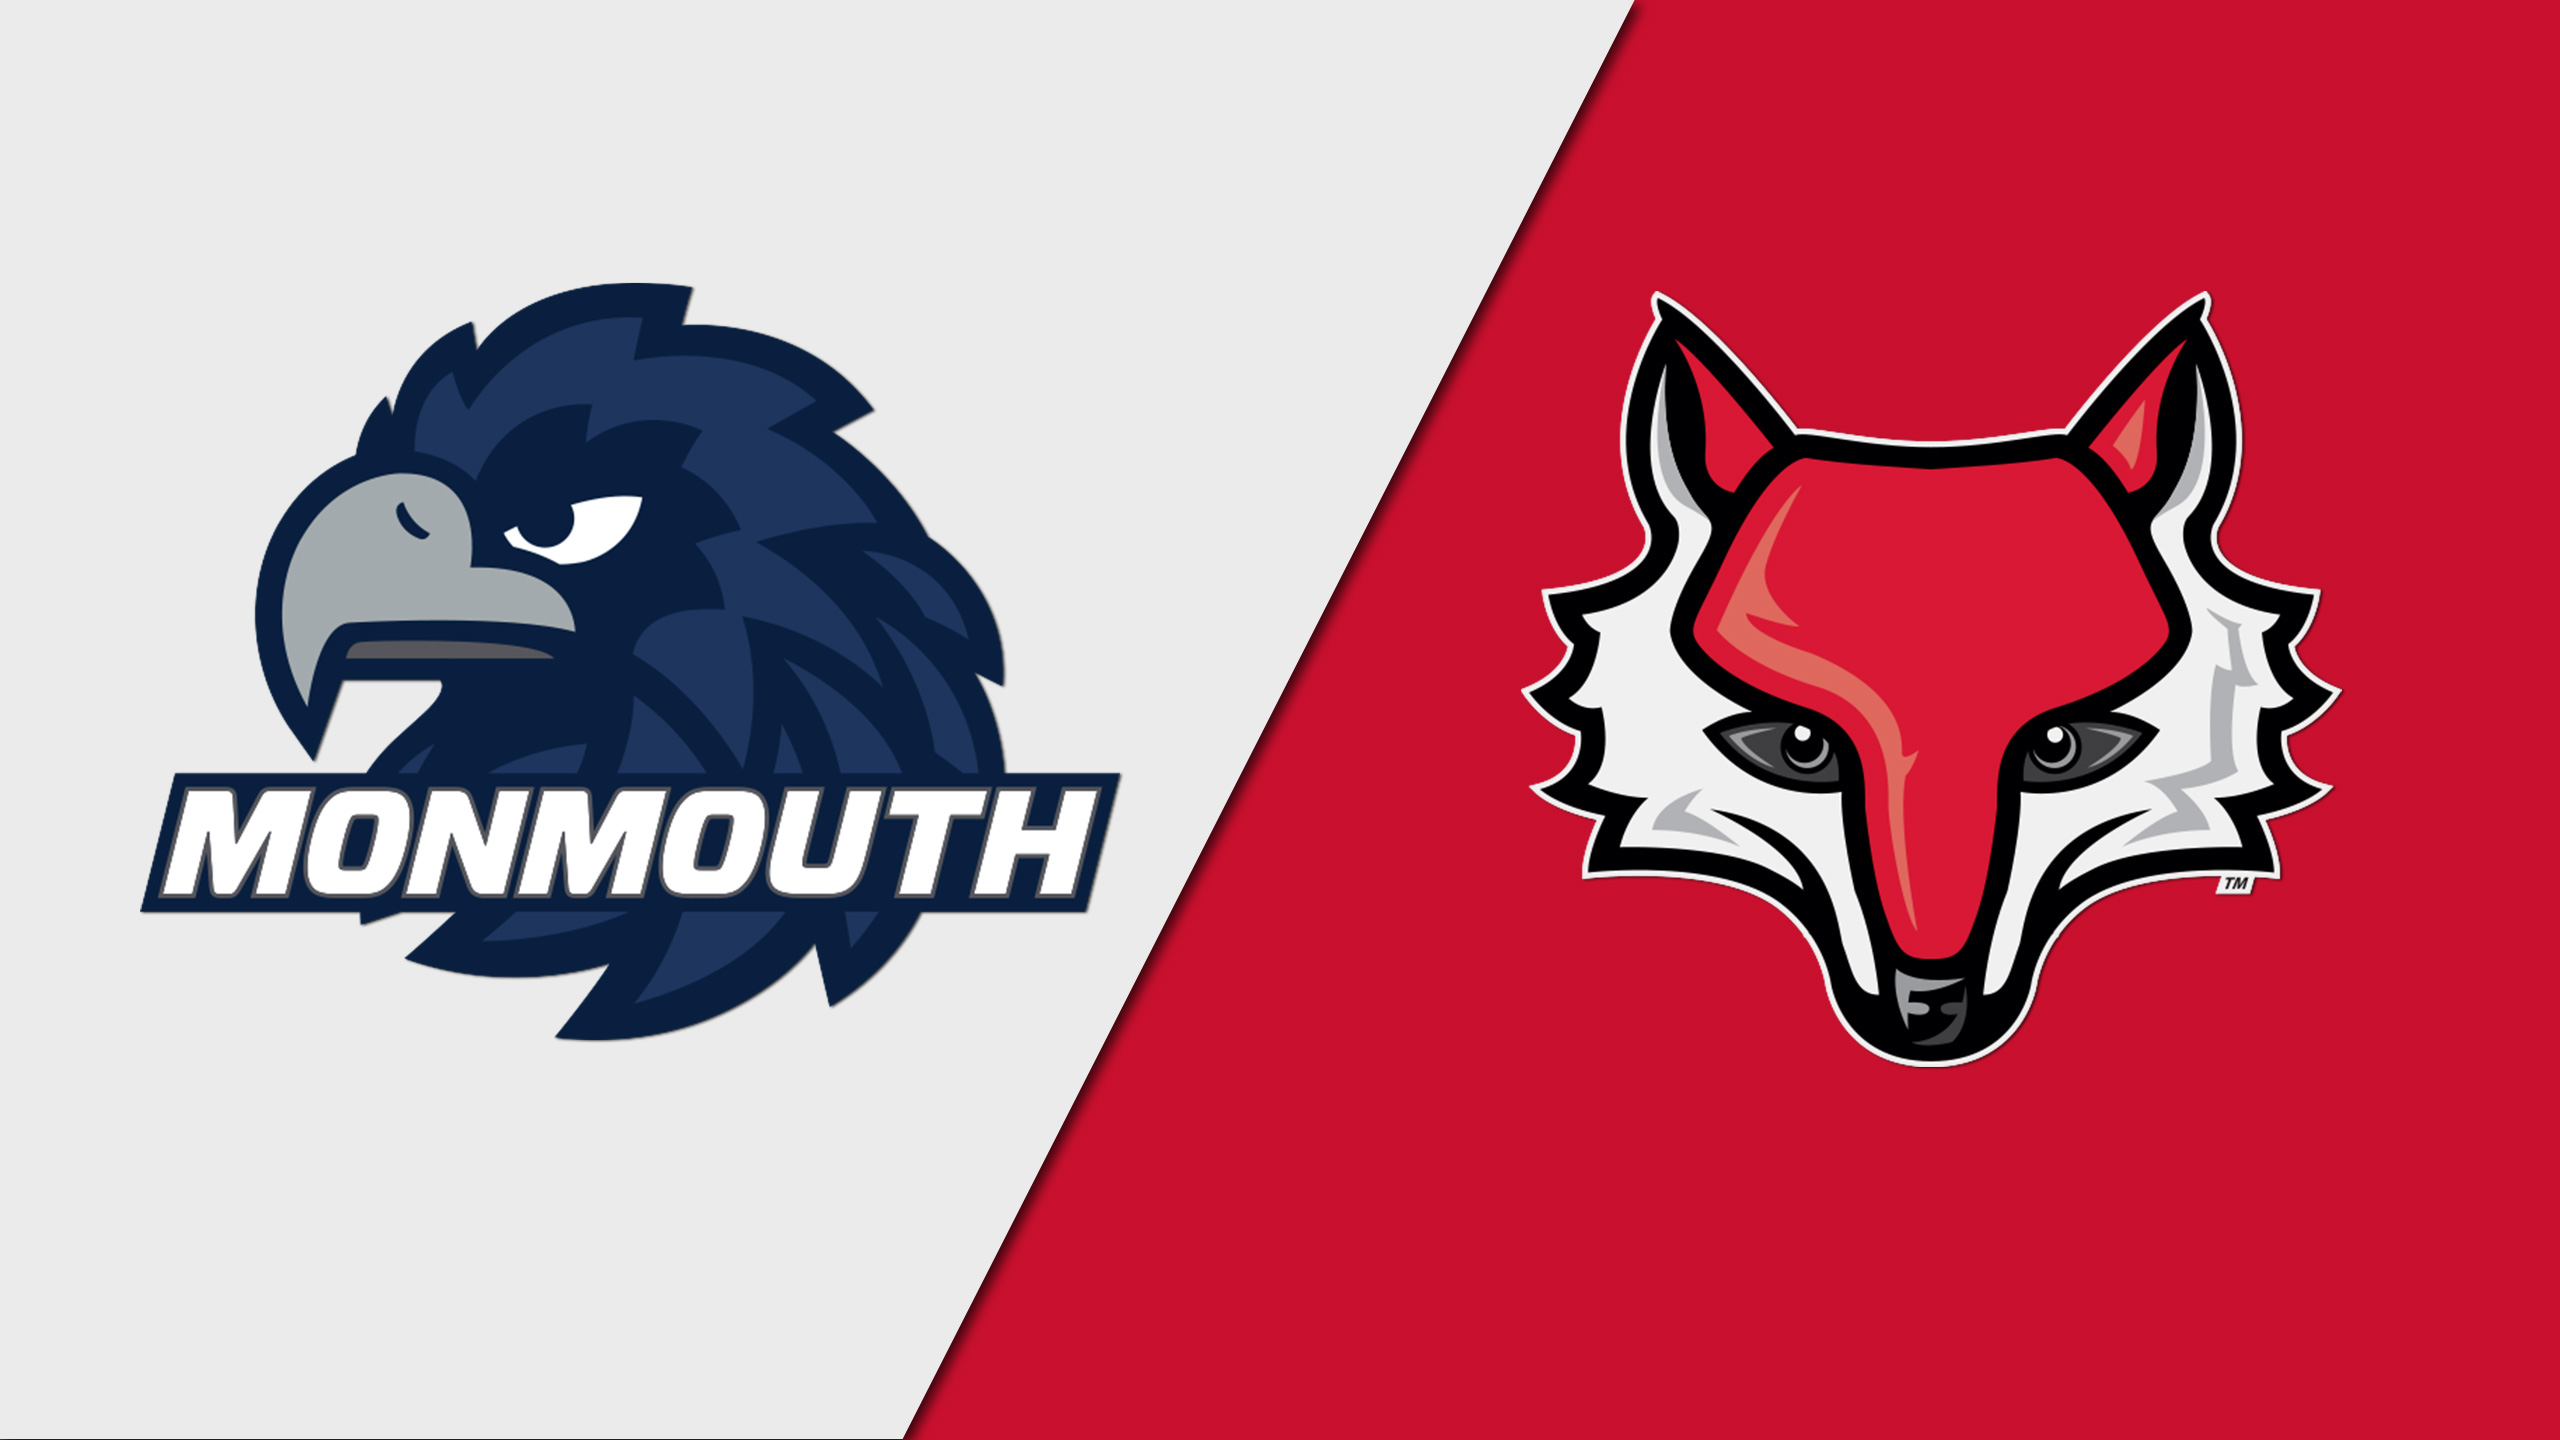 Monmouth vs. Marist (W Basketball)